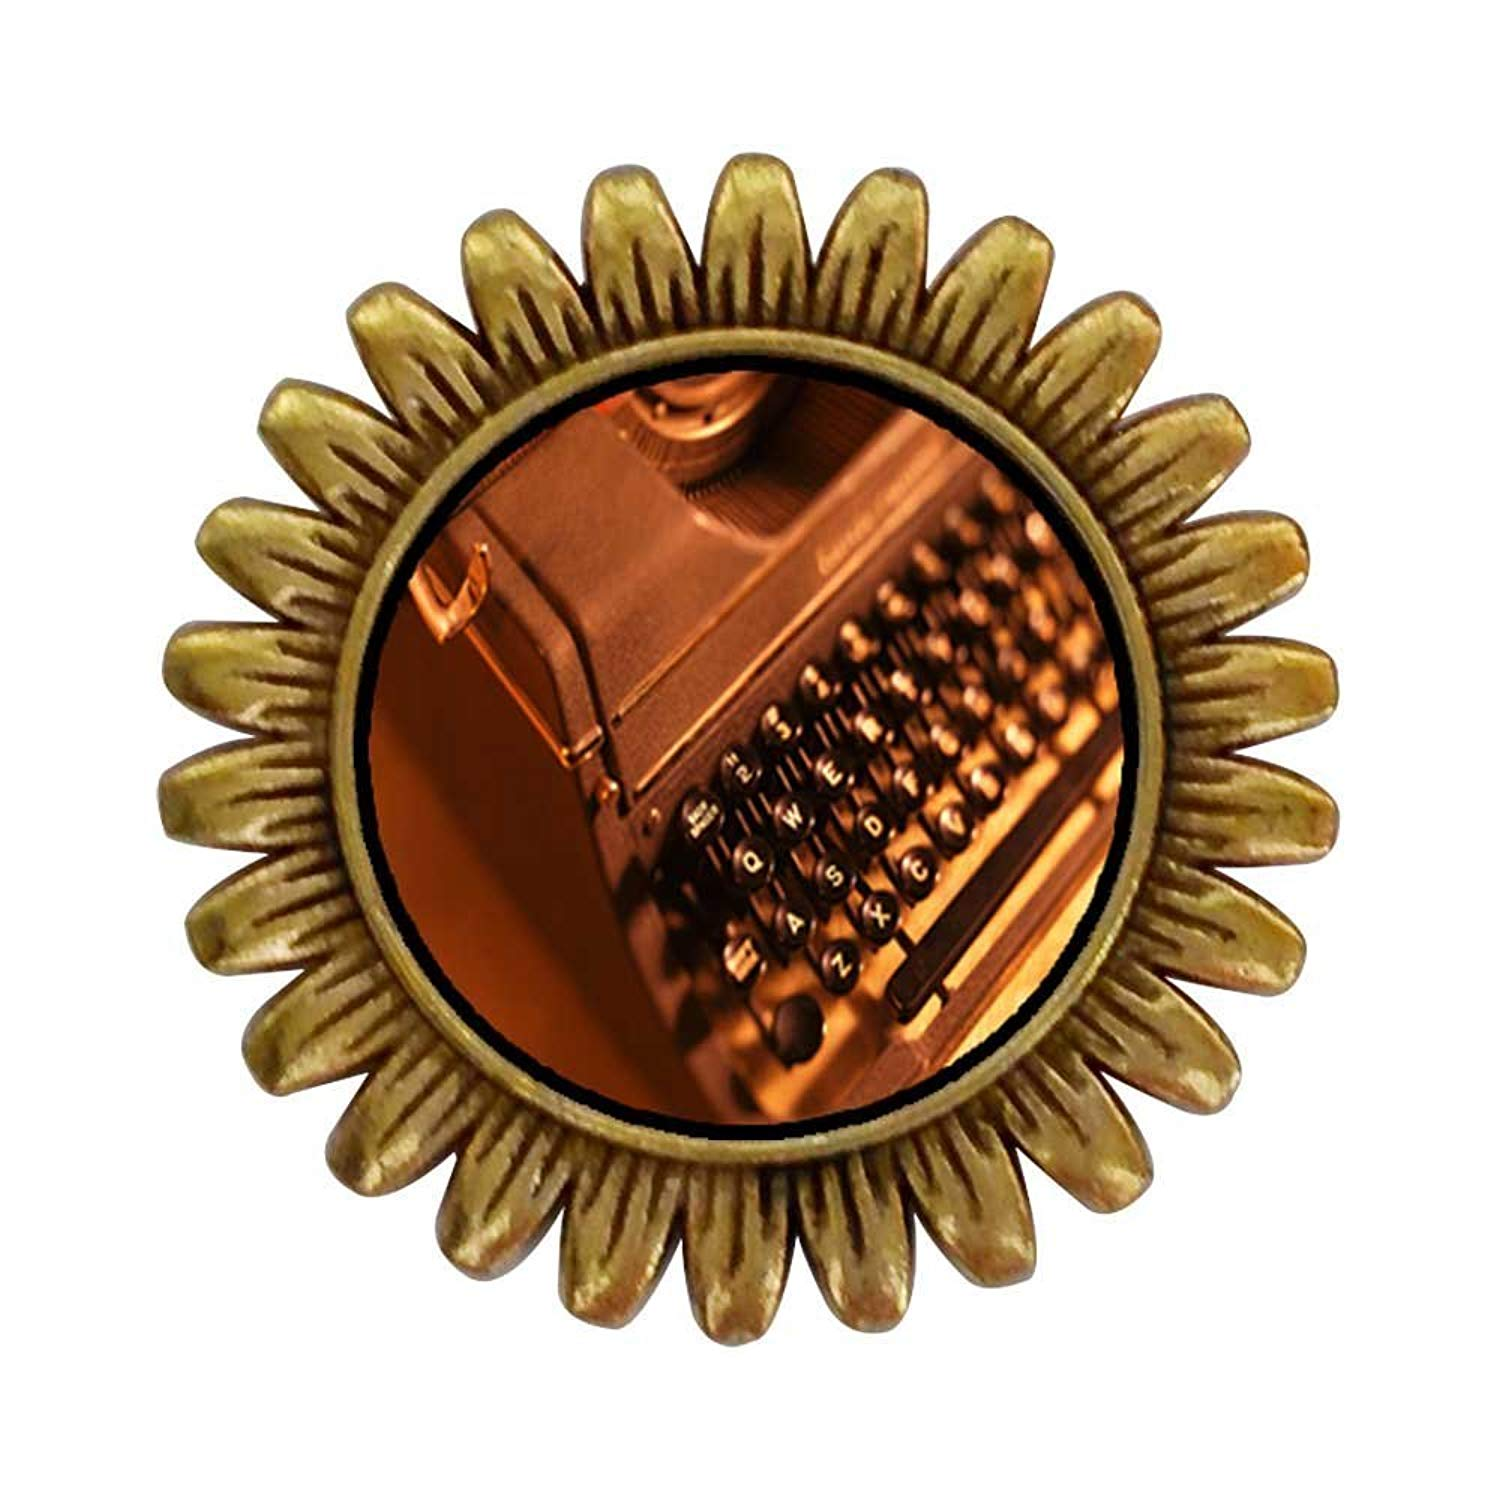 GiftJewelryShop Ancient Style Gold-plated Book Writer's Typewriter Sunflower Pins Brooch